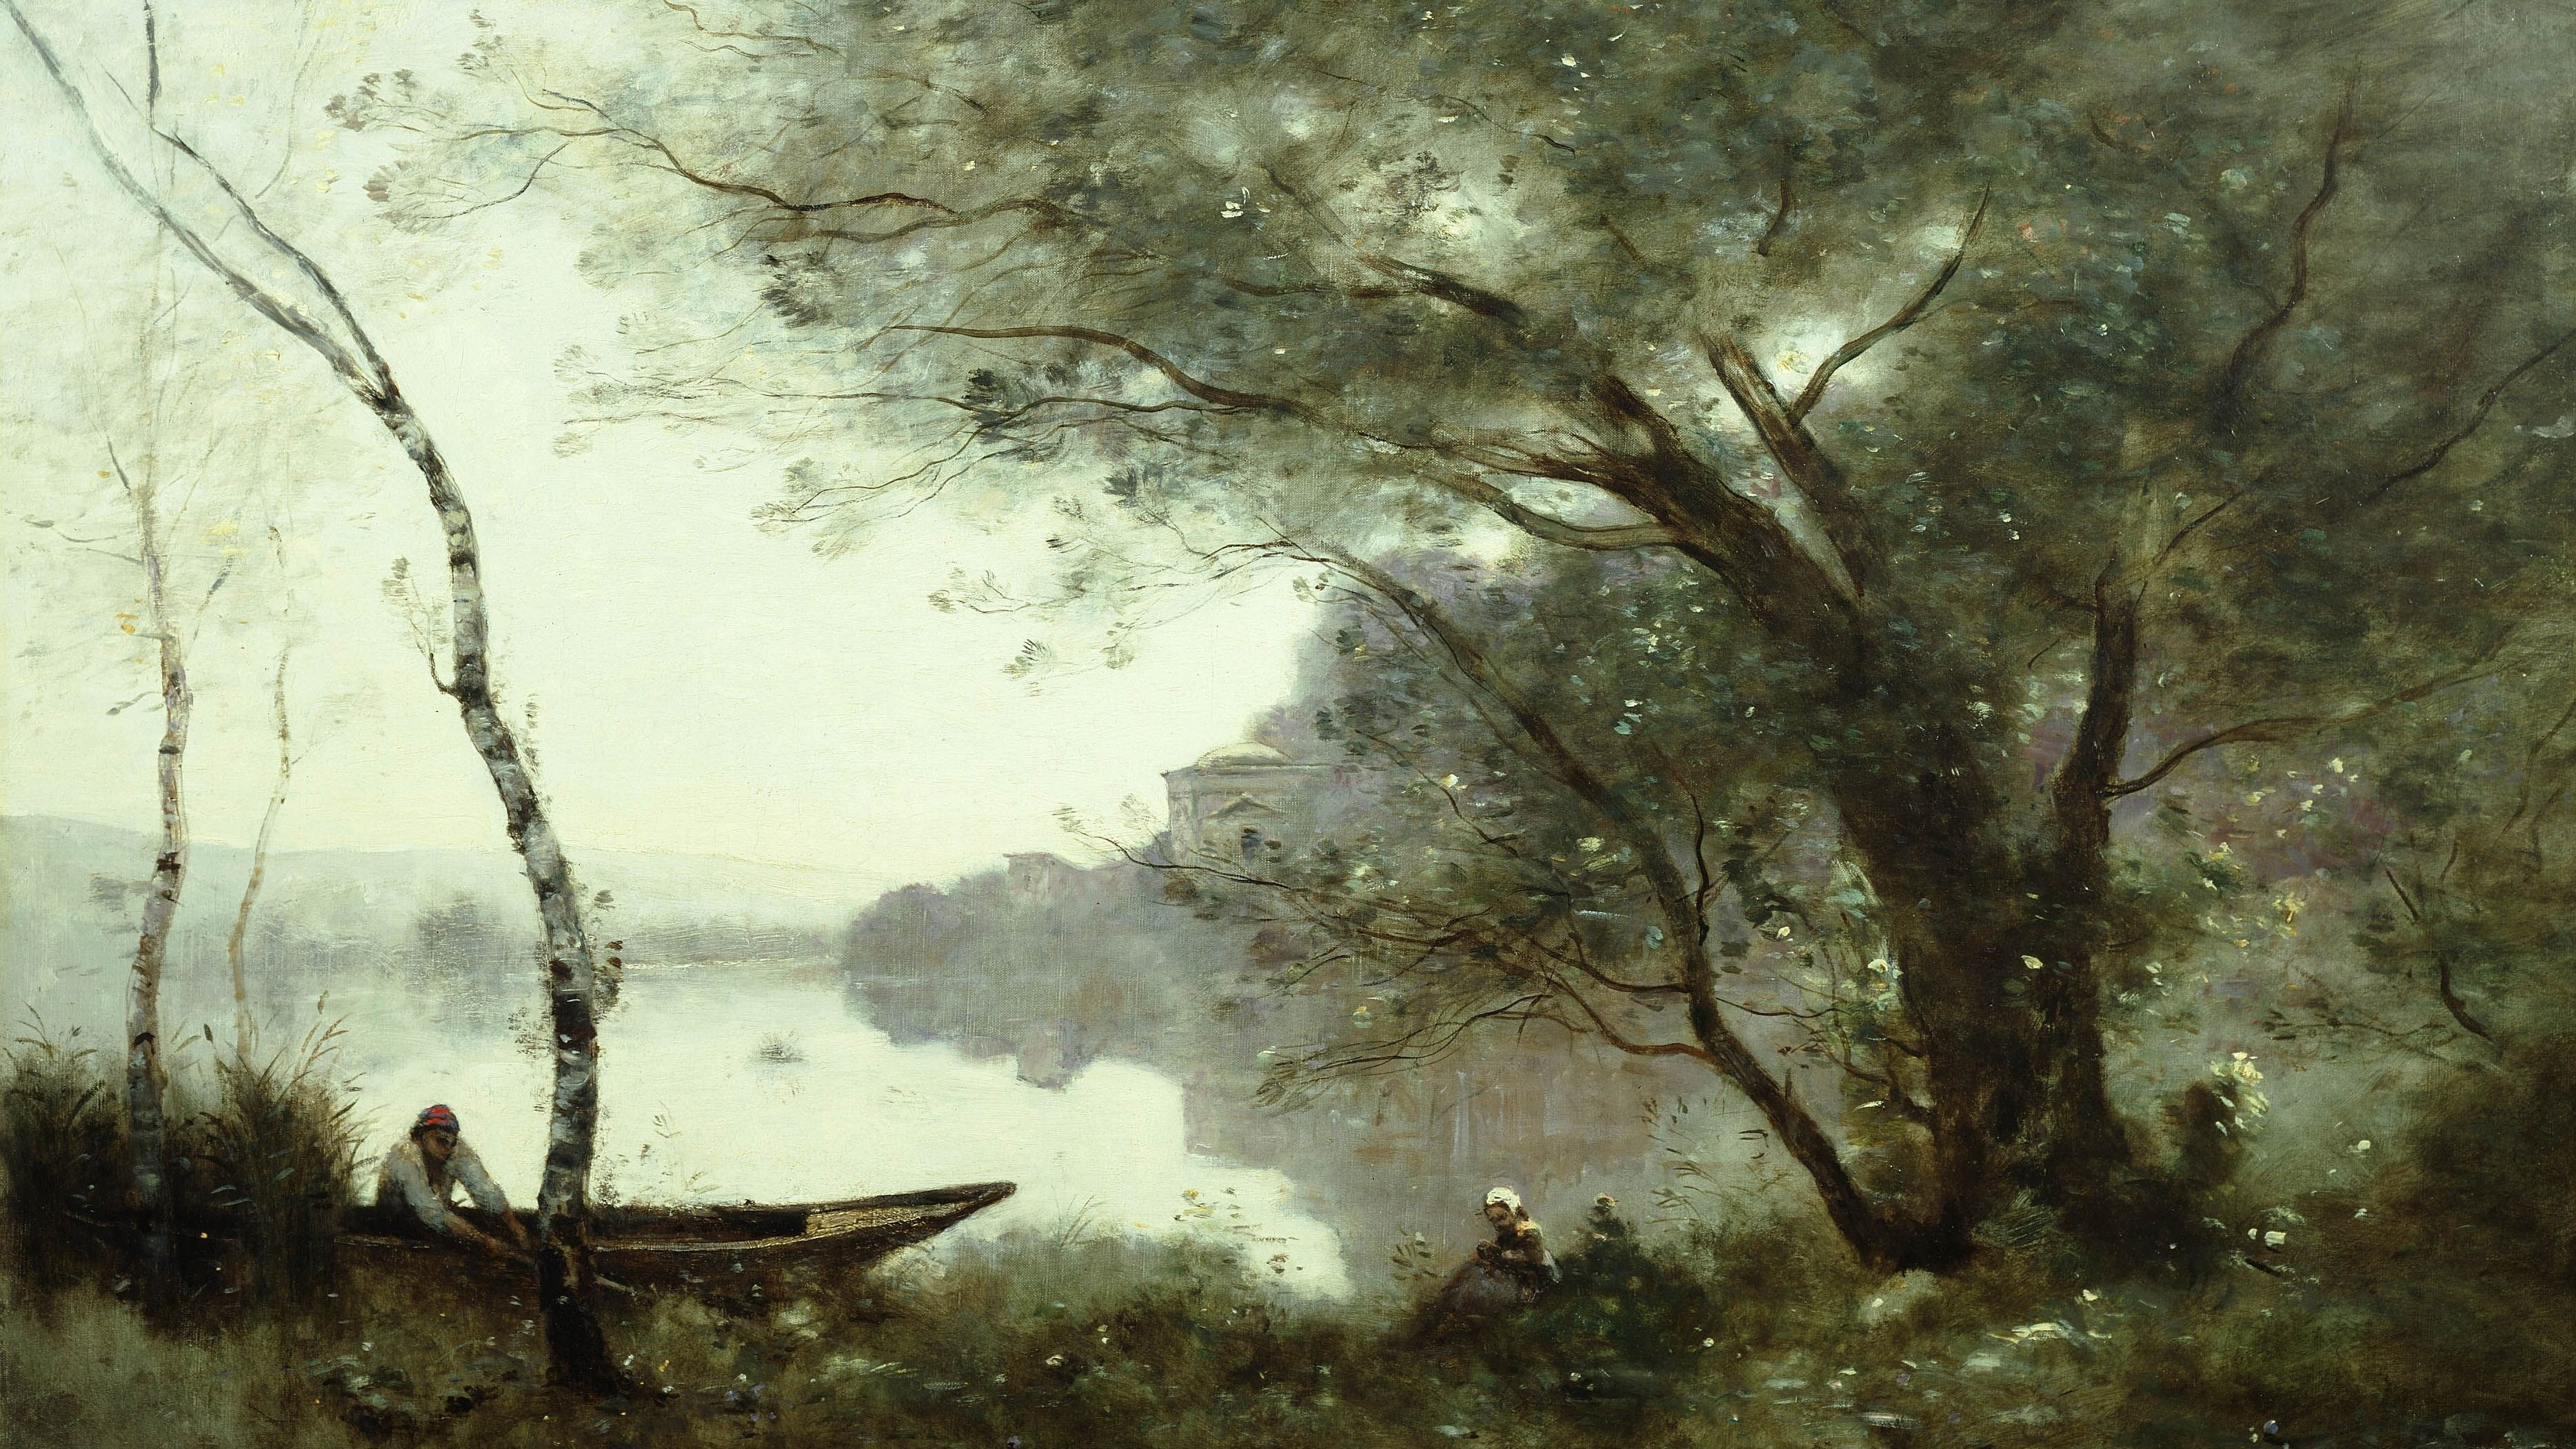 Camille Corot, The Boatman of Mortefontaine, 1865-1870, Oel auf Leinwand, 60,9x89,8 cm, Henry Clay Frick Bequest (Foto: The Frick Collection)